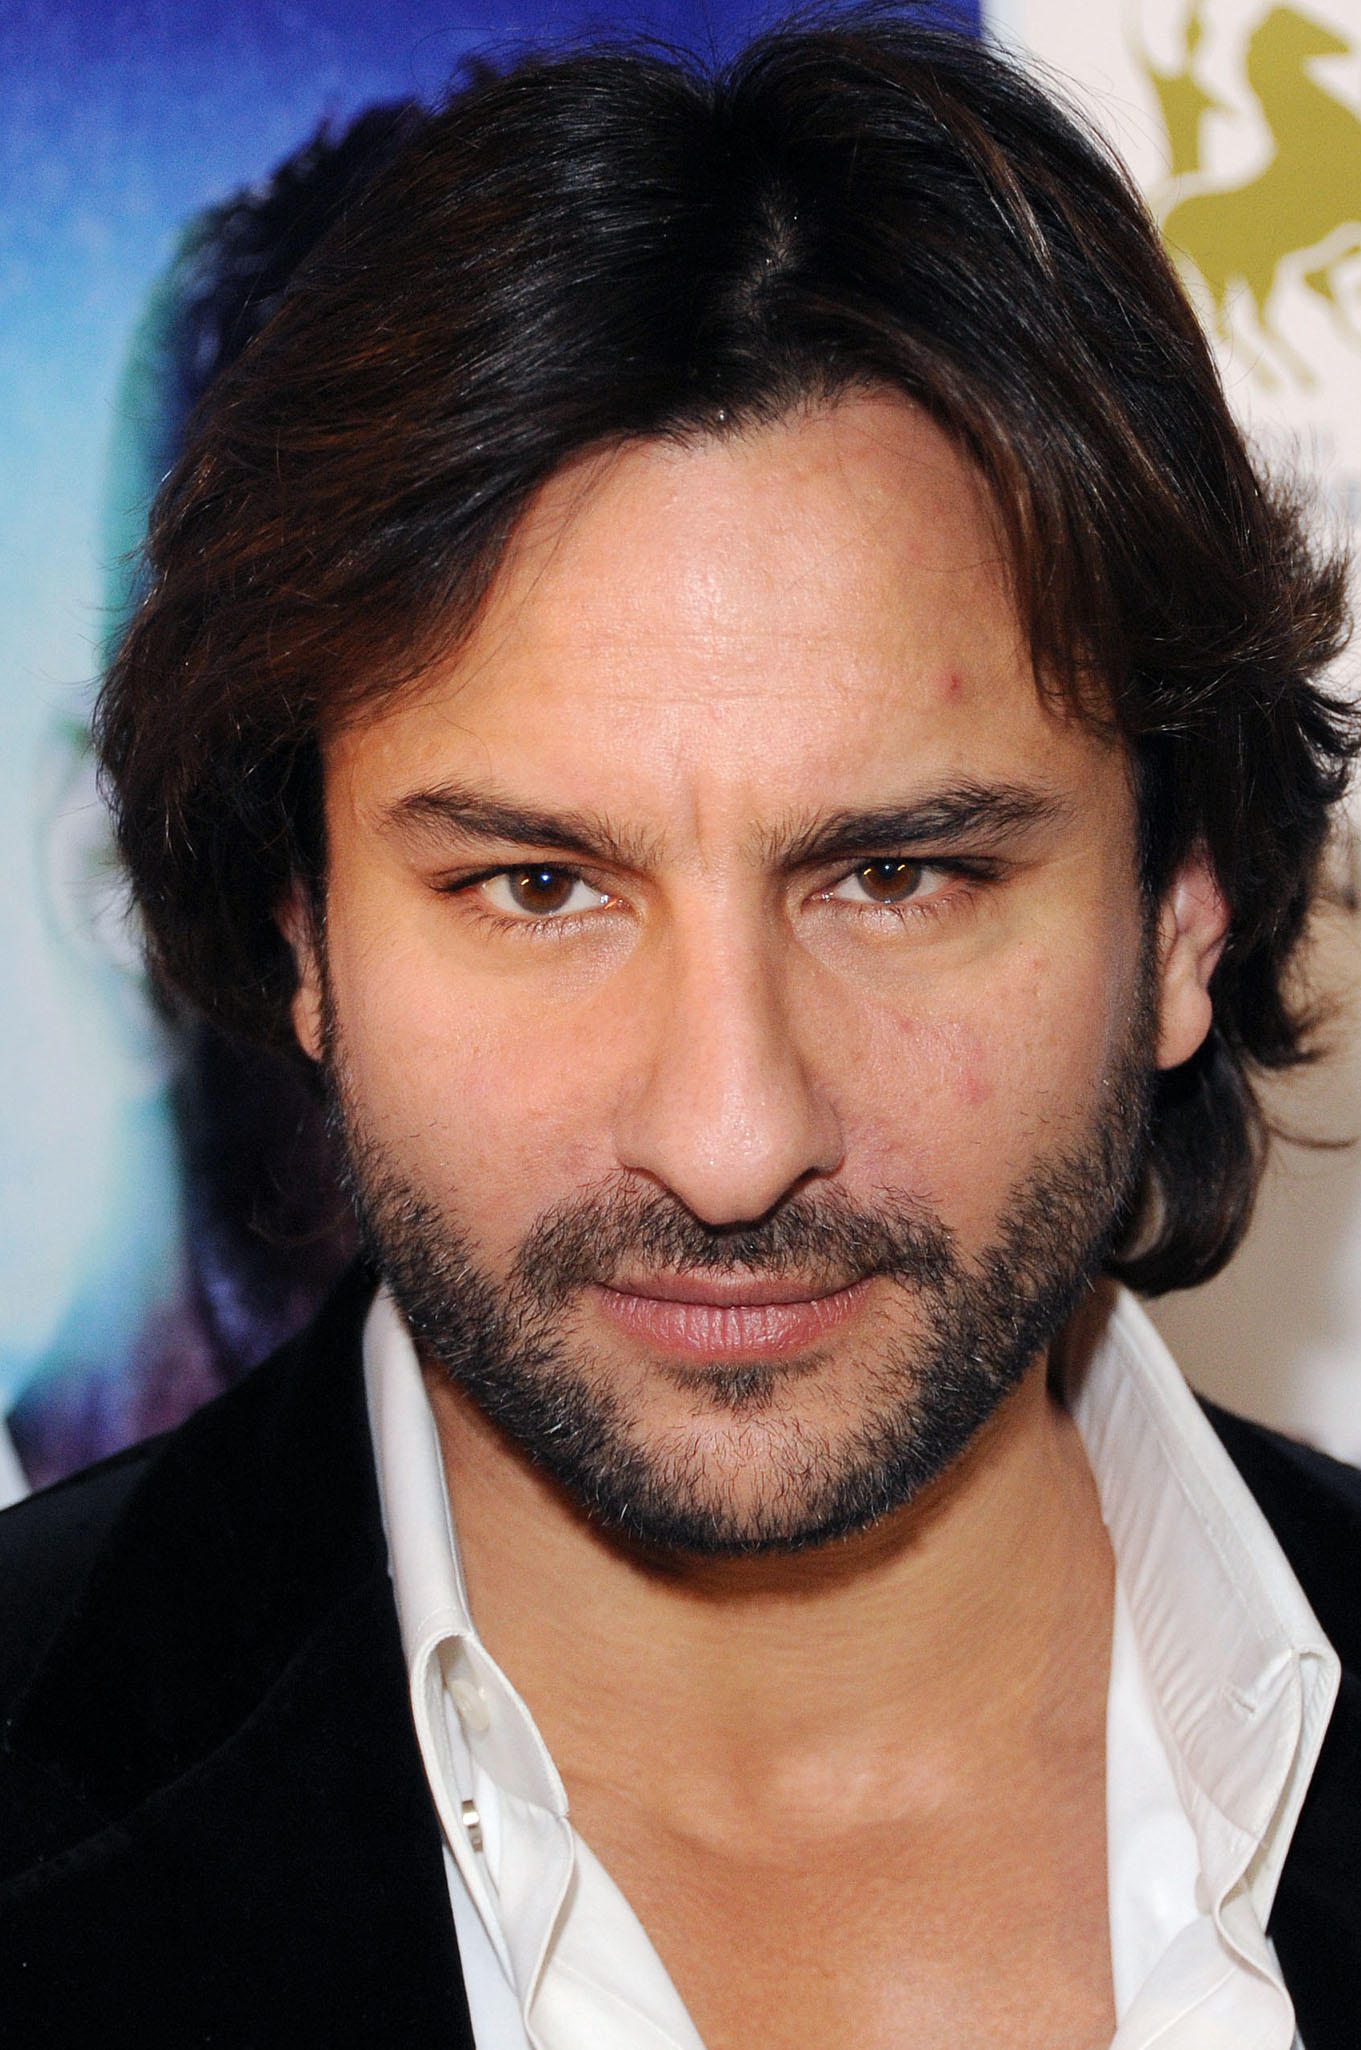 Saif Ali Khan at a photocall for